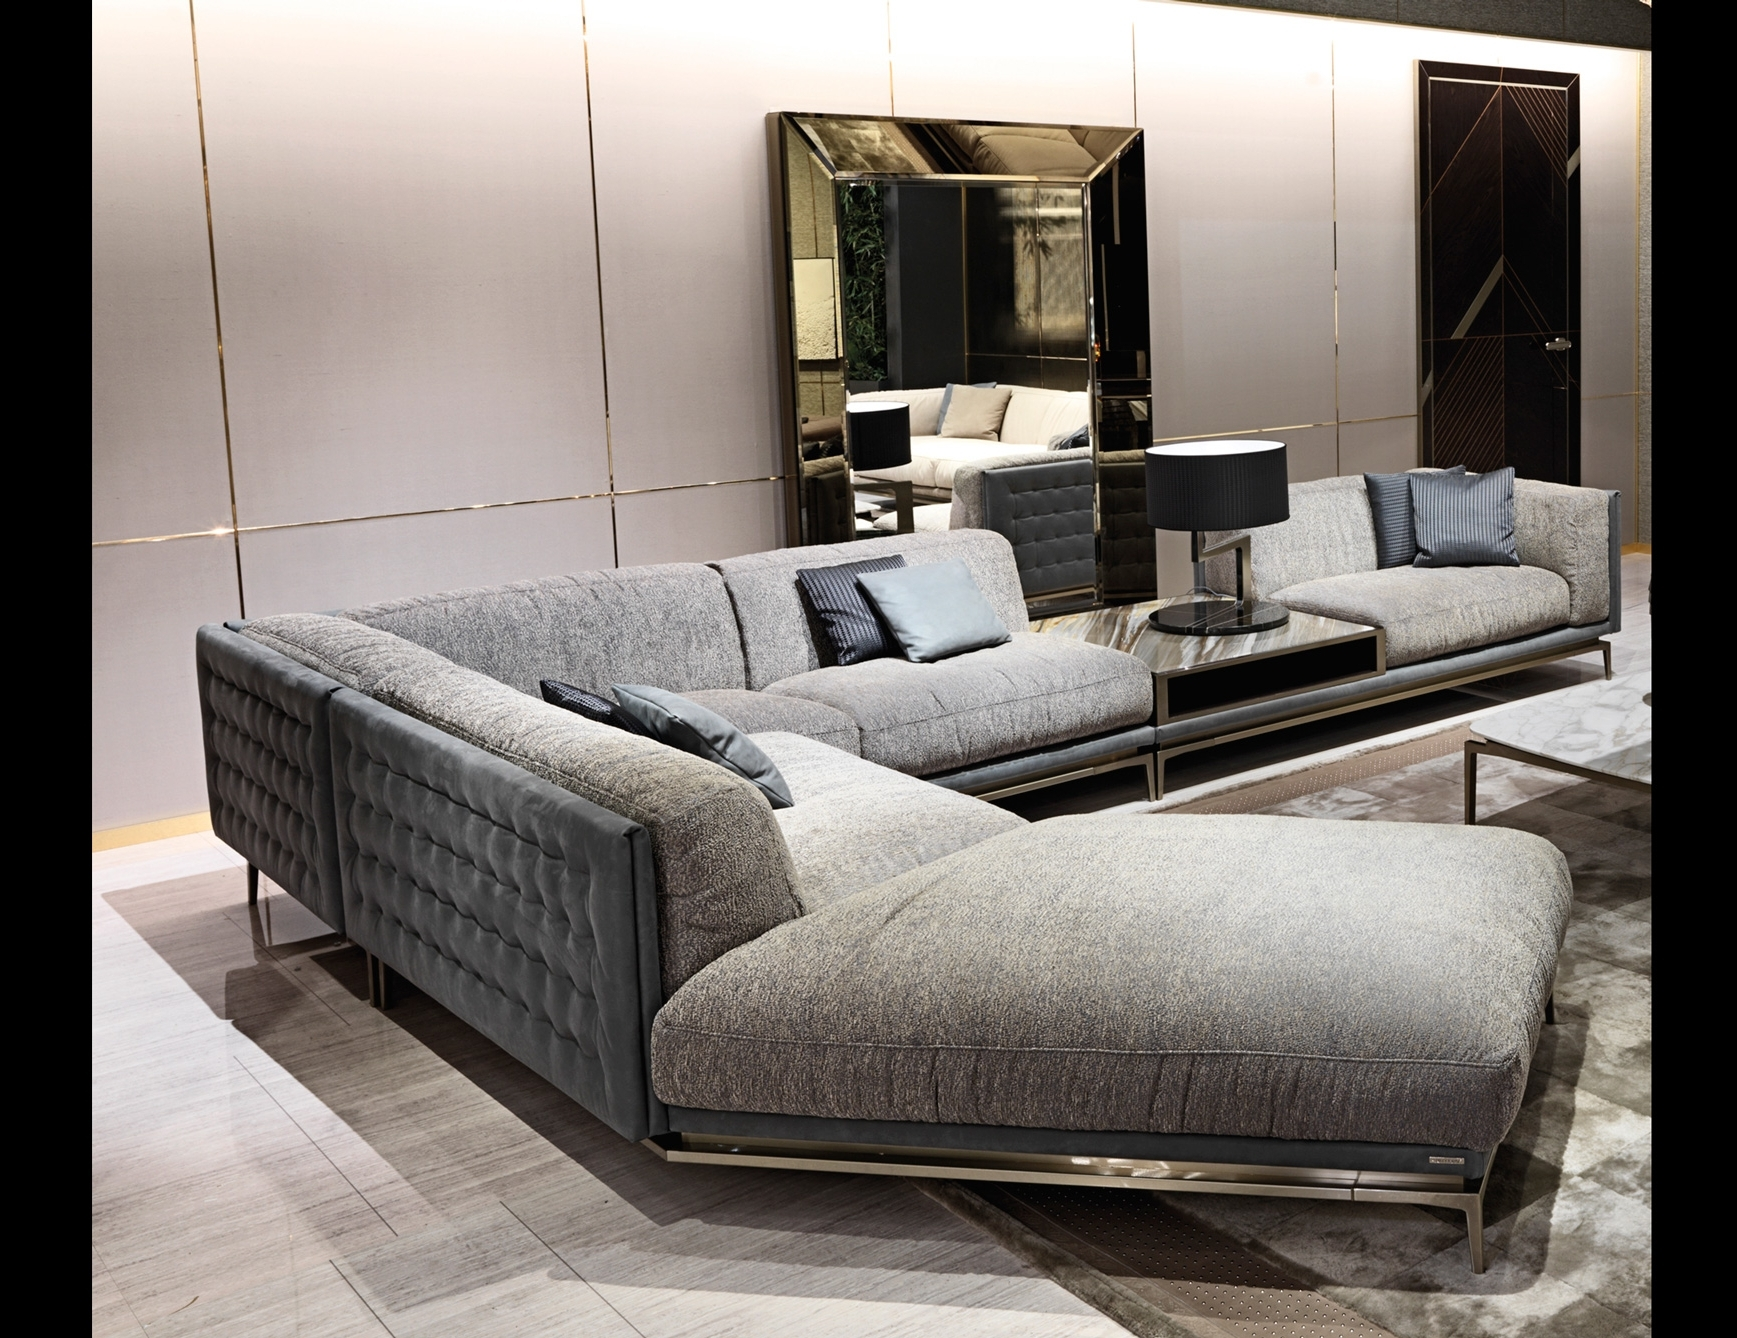 Italian Designer Luxury High End Sofas & Sofa Chairs: Nella Vetrina Regarding Fashionable High End Sectional Sofas (Gallery 14 of 20)